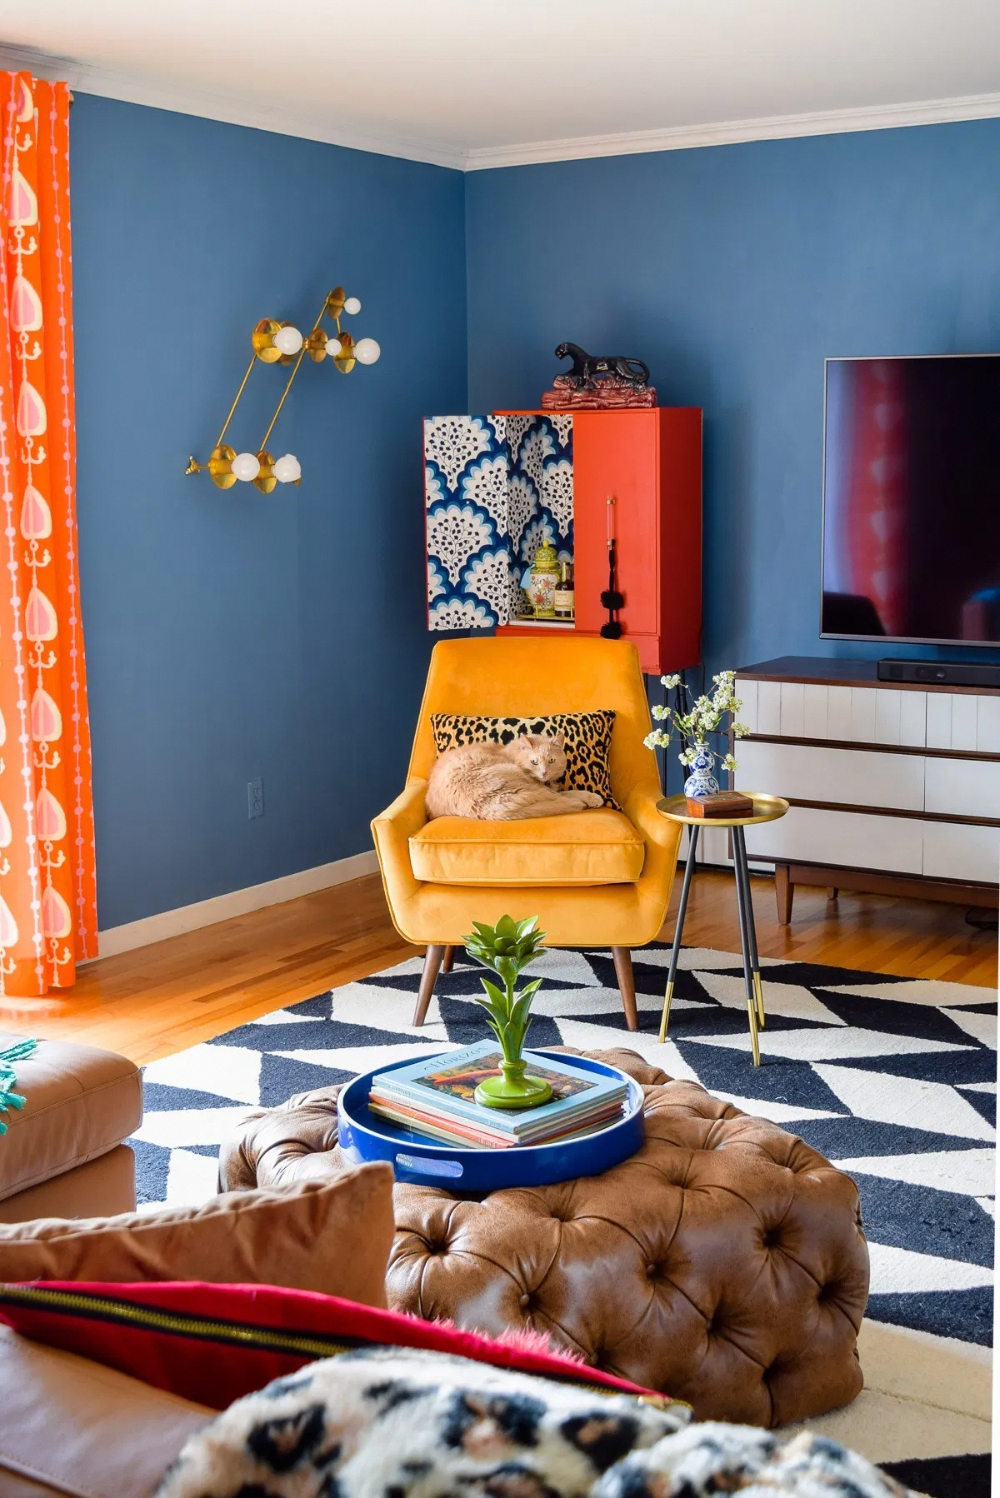 Our Mid Mod Eclectic Living Room is complete! It packs a punch and mixes old with new, through colour and pattern. #mcm #midmod #eclectichome # livingroom #mcmlivingroom #DiyCraftsForRoomDecor